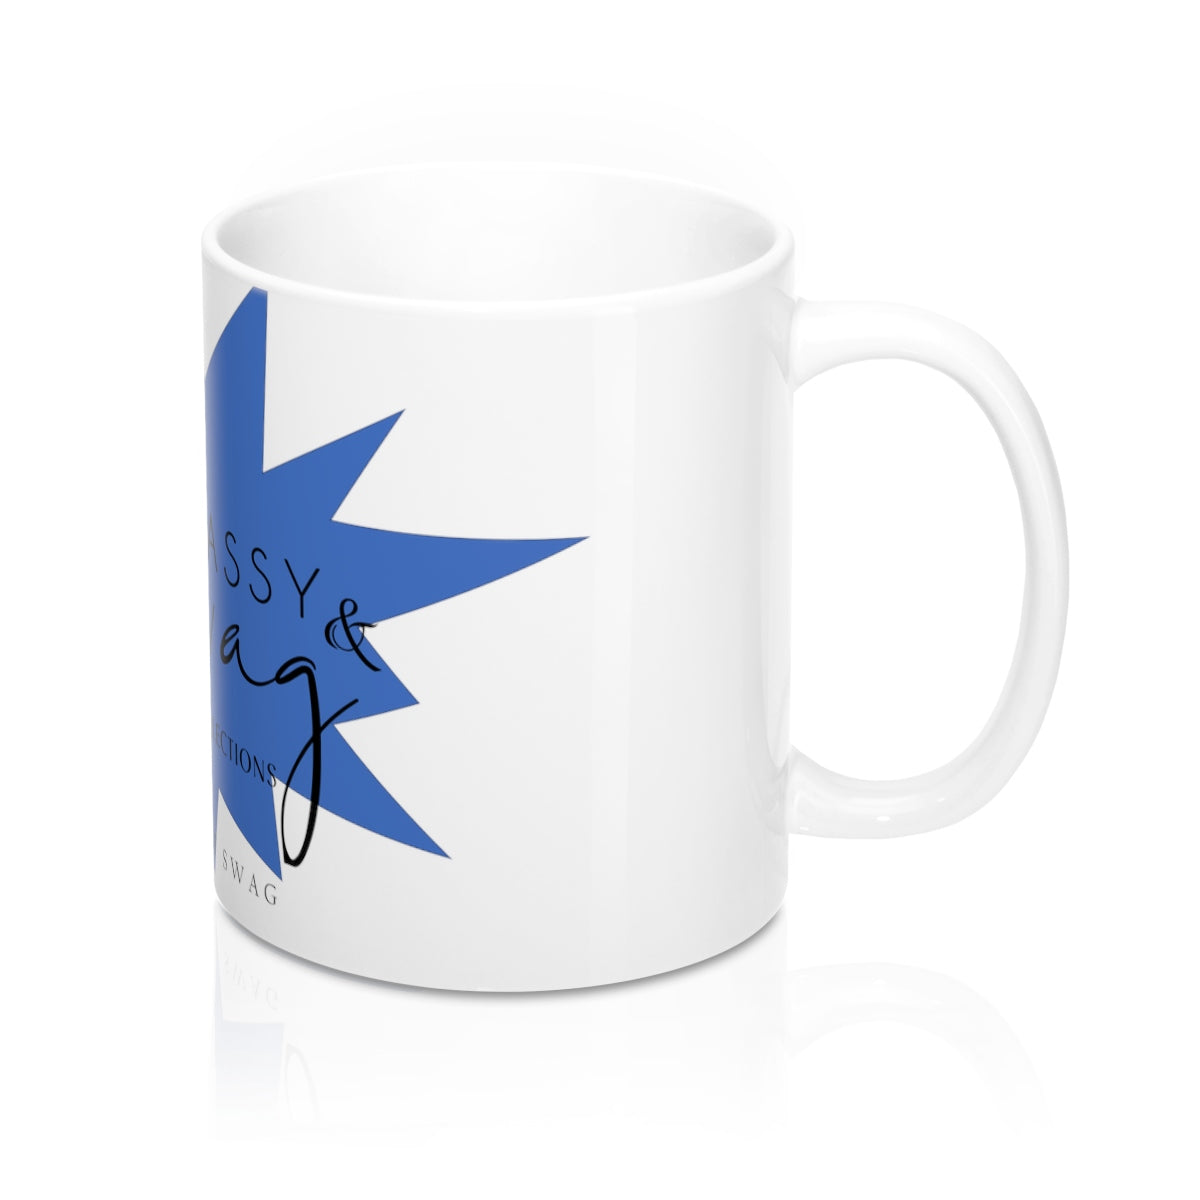 Sassy & Swag Collections - Blue, Mug 11oz